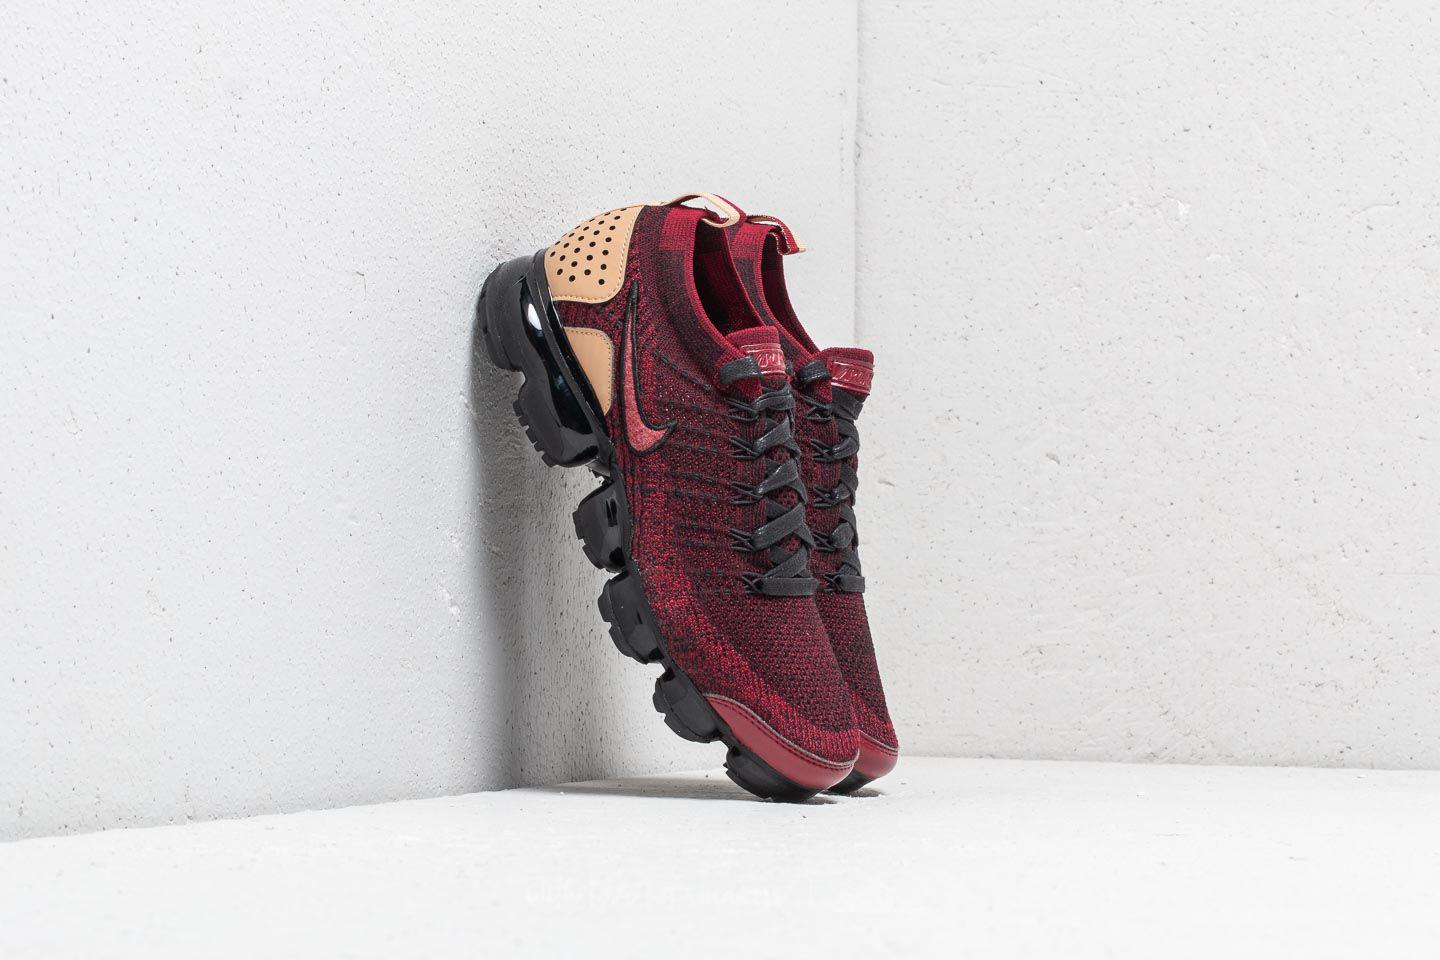 eaee5bb63ab Lyst - Nike Air Vapormax Flyknit 2 Nrg Team Red  Team Red-black in ...